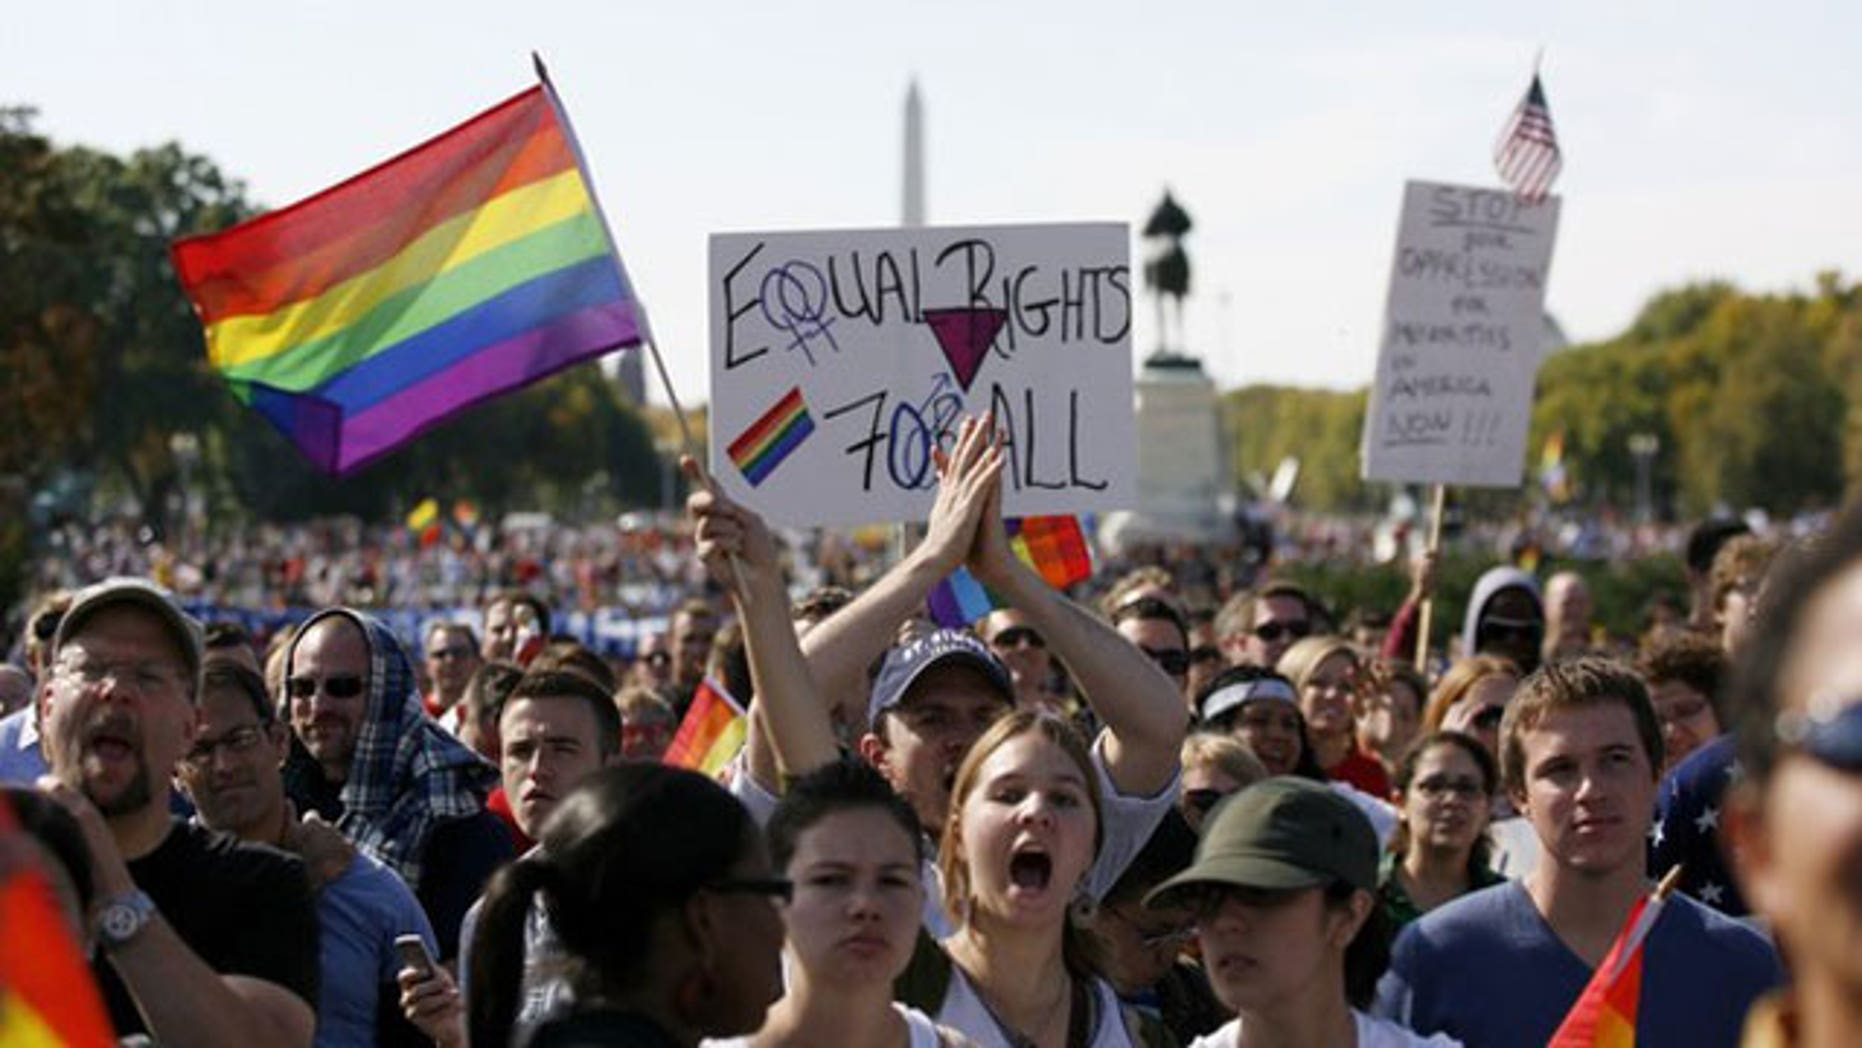 Oct. 11: Thousands of people gather during a gay rights demonstration in Washington (Reuters).